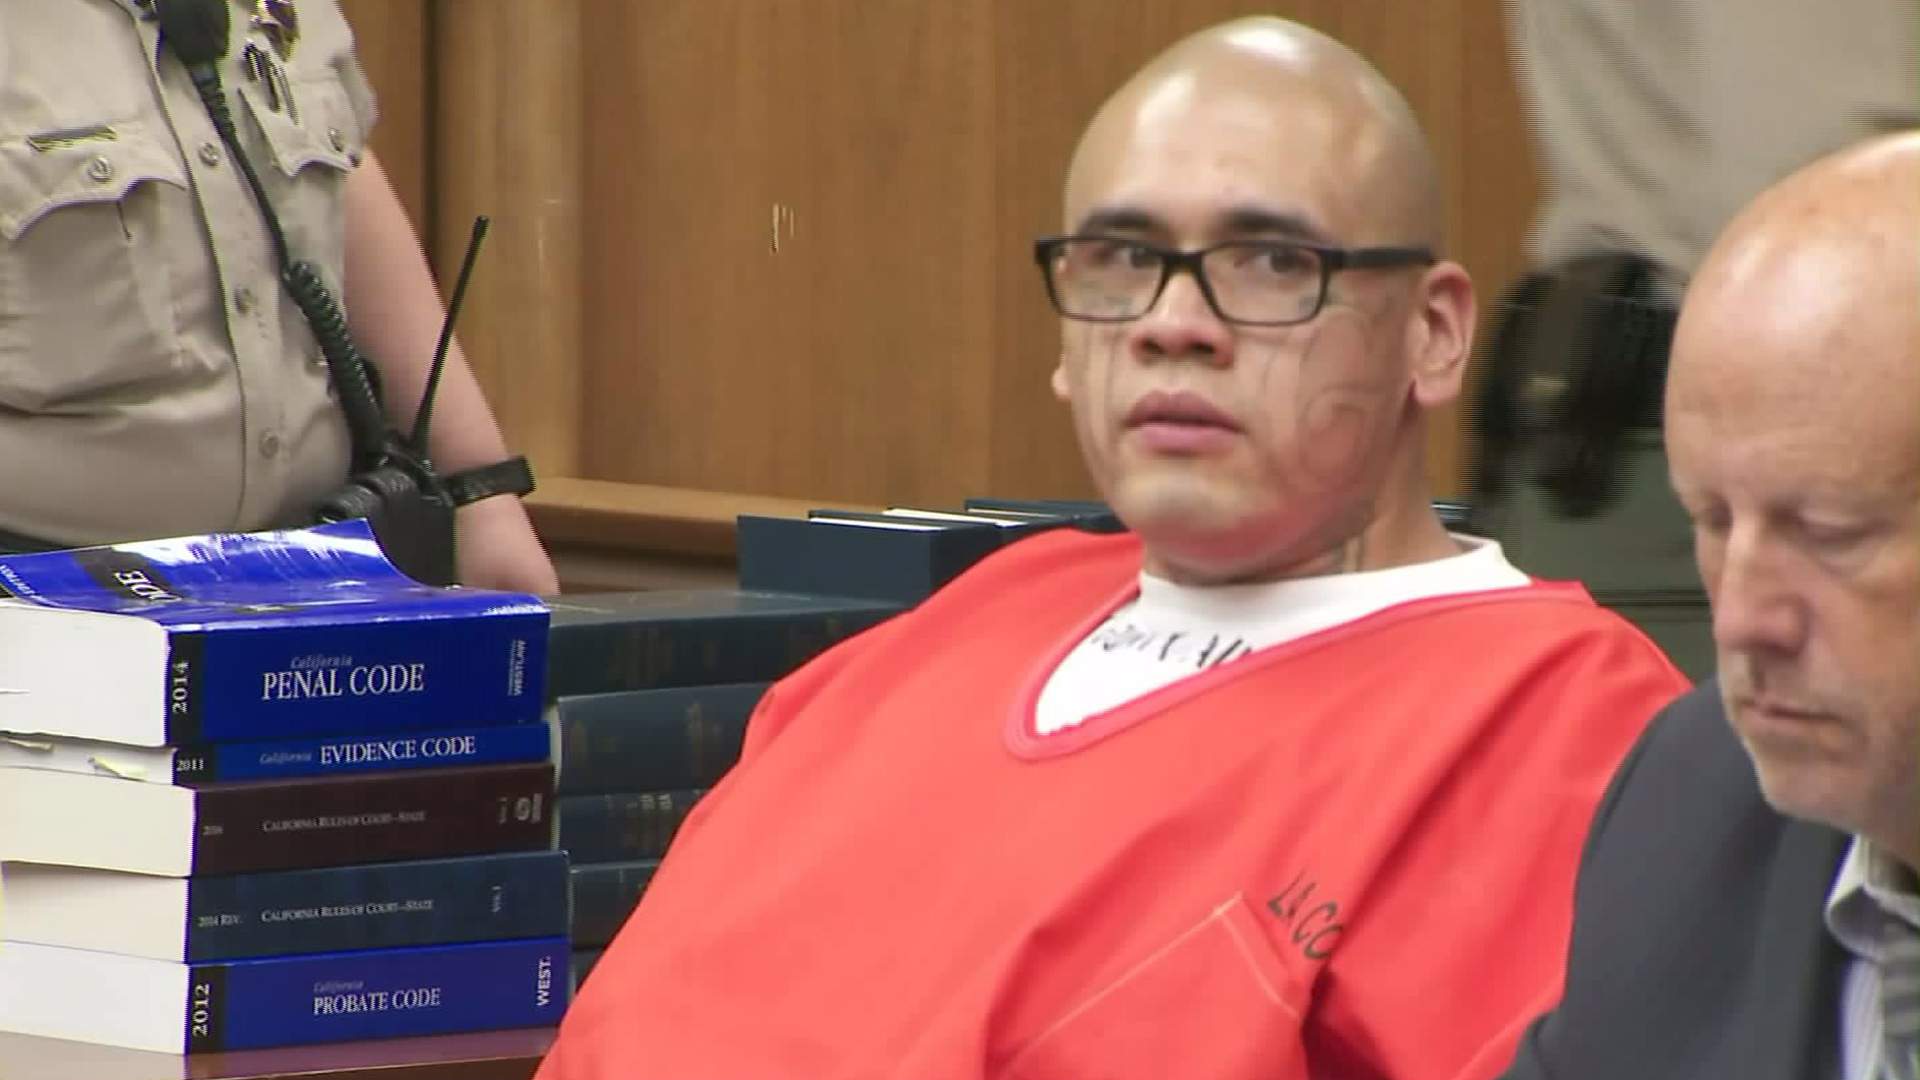 Michael C. Mejia appears at his arraignment in Norwalk on Aug. 14, 2017. (Credit: KTLA)